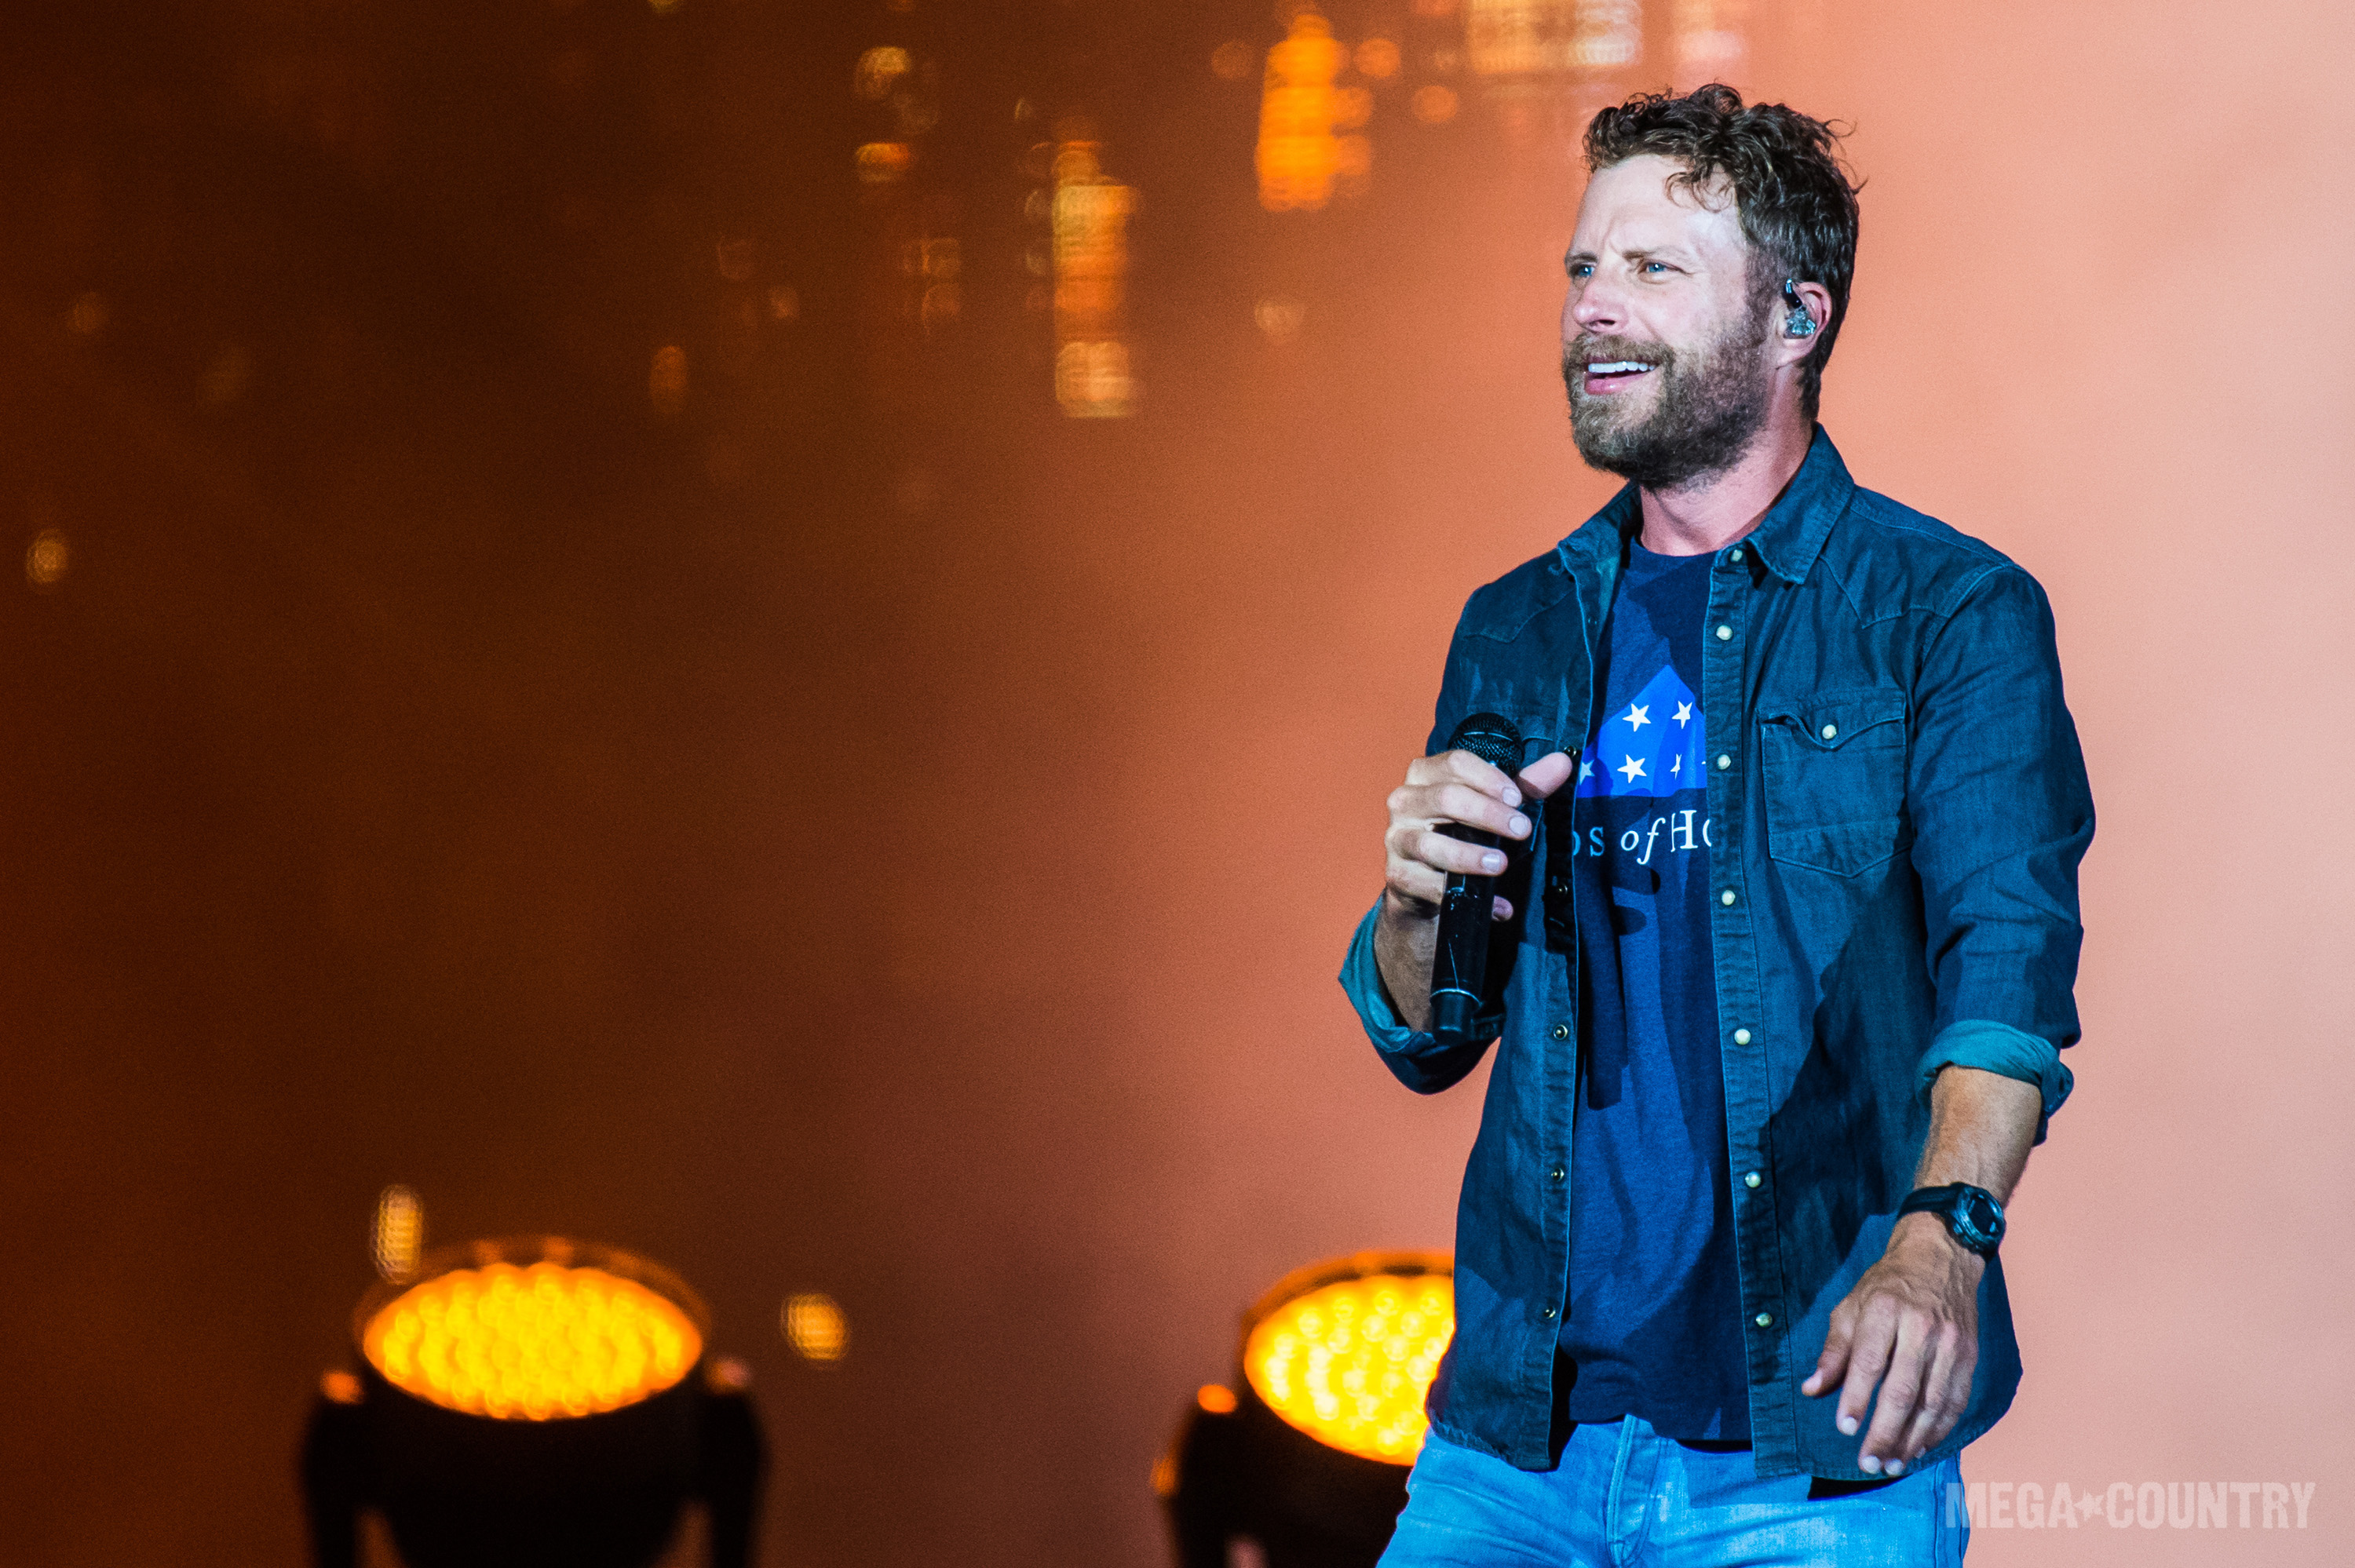 along dierks at casino rain to the hits entertainment hollywood mo country brings bentley with columbia star amphitheatre image music article